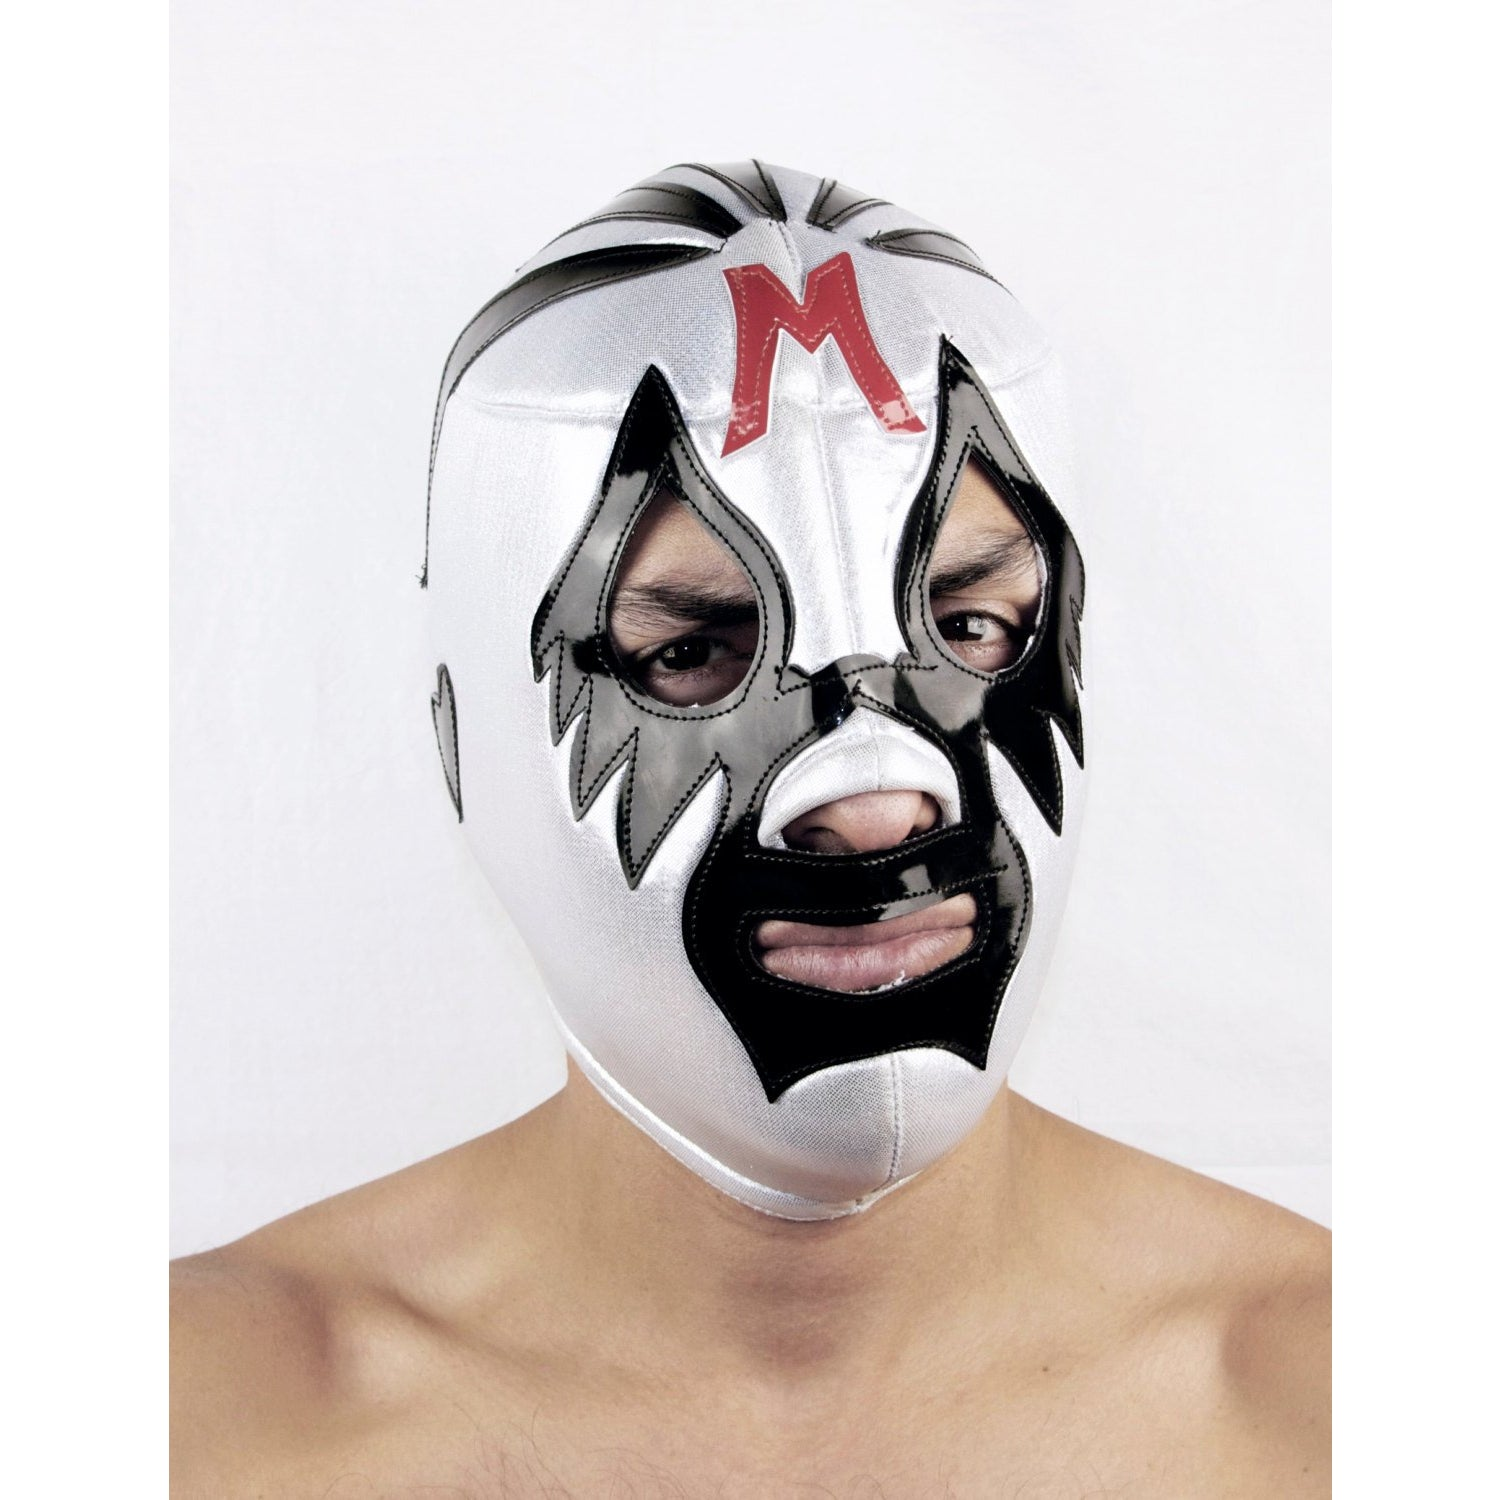 Mil Mascaras Mexican Wrestling Mask